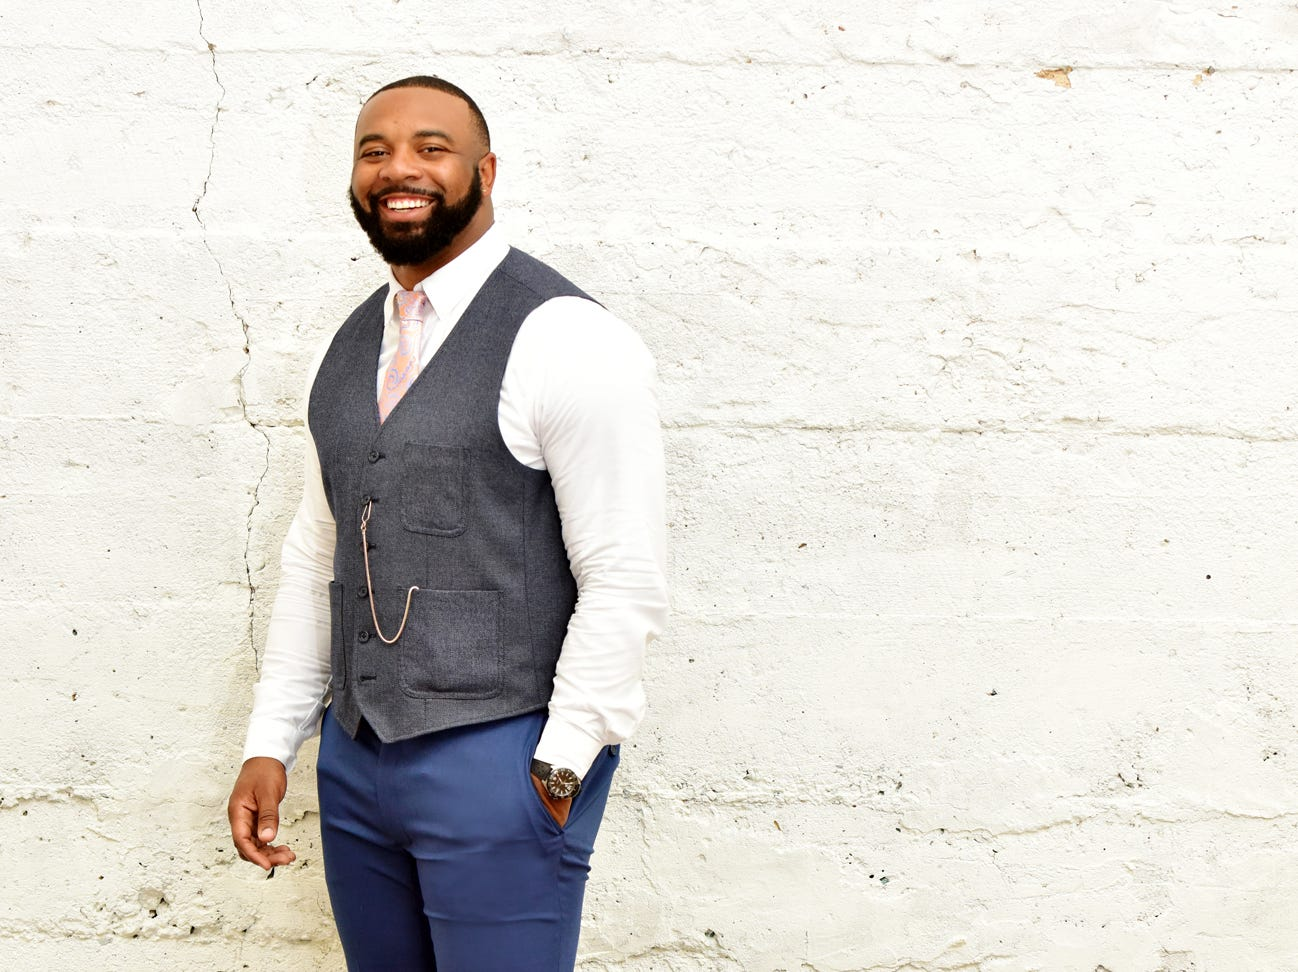 Tajh Boyd was name one of TALK  Greenville's 10 Most Fashionable.